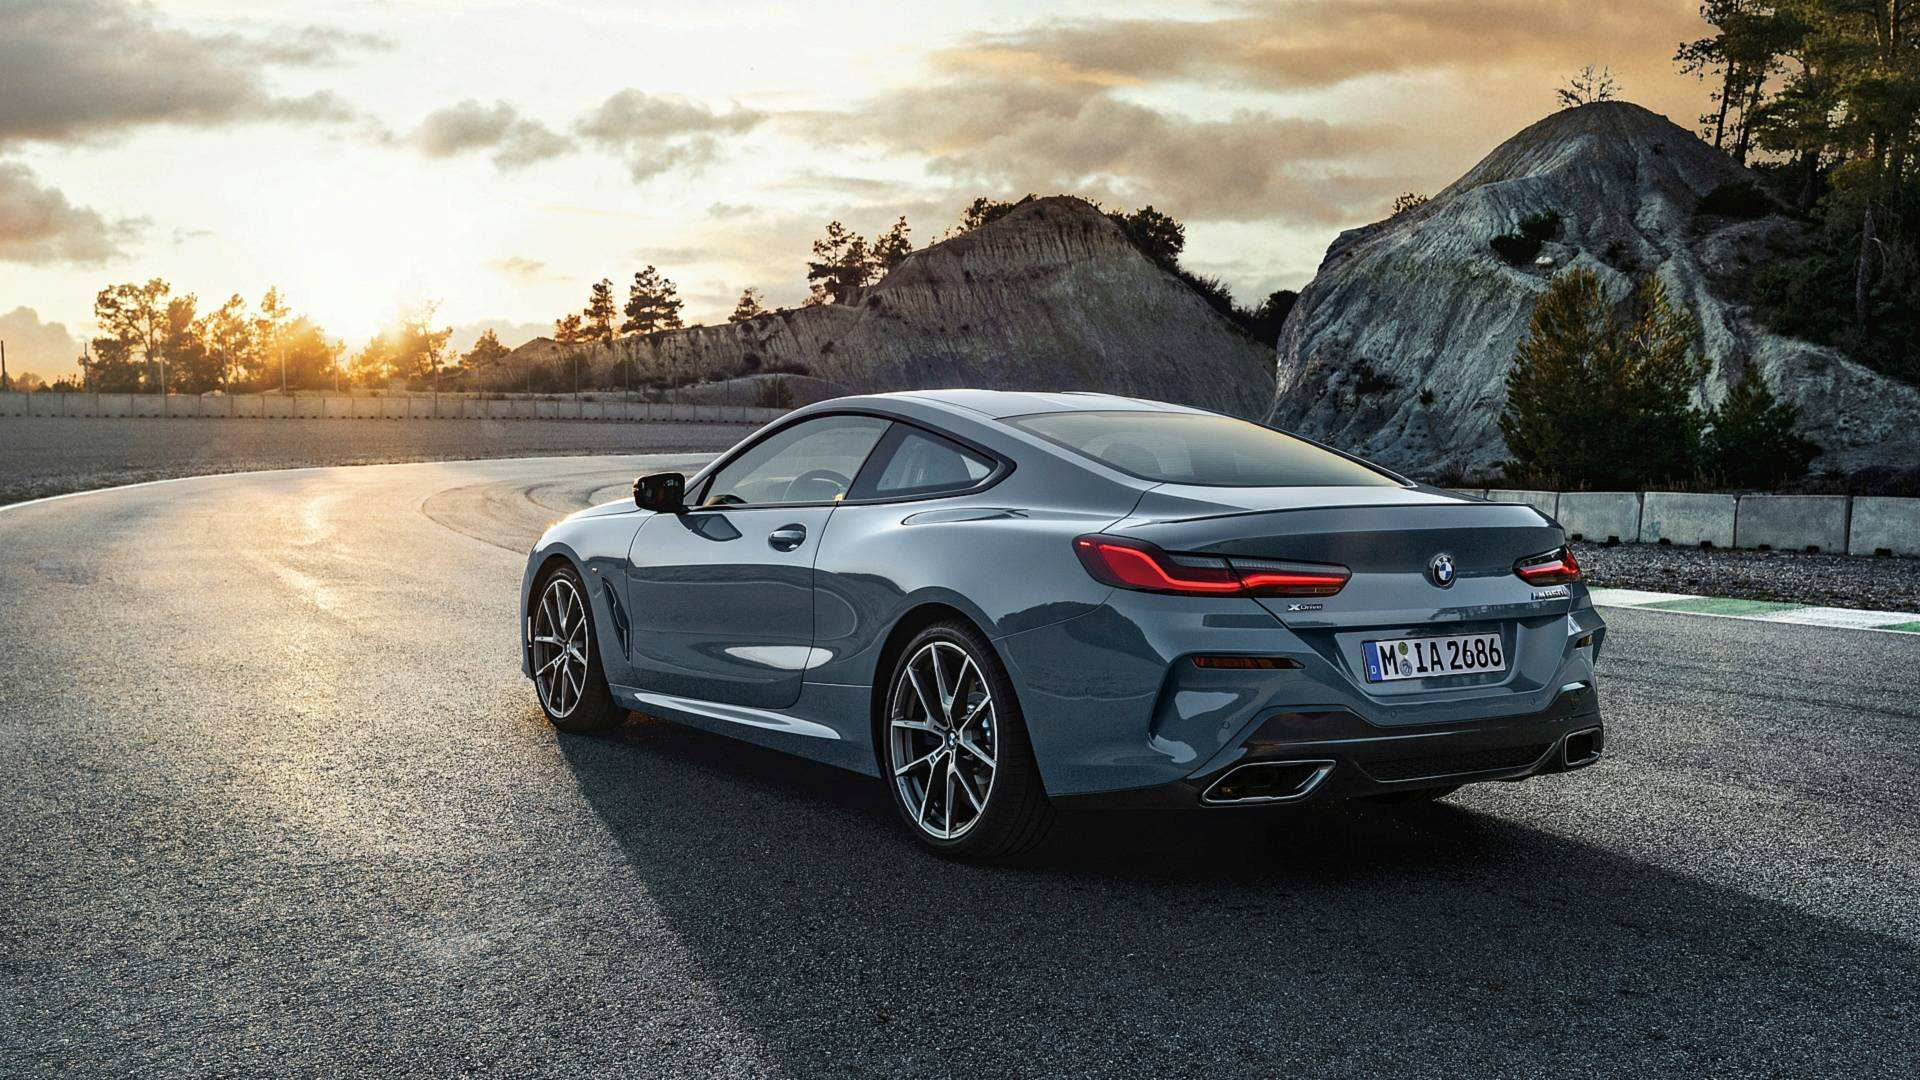 94 Gallery of 2019 Bmw 8 Series Release Date Pricing for 2019 Bmw 8 Series Release Date